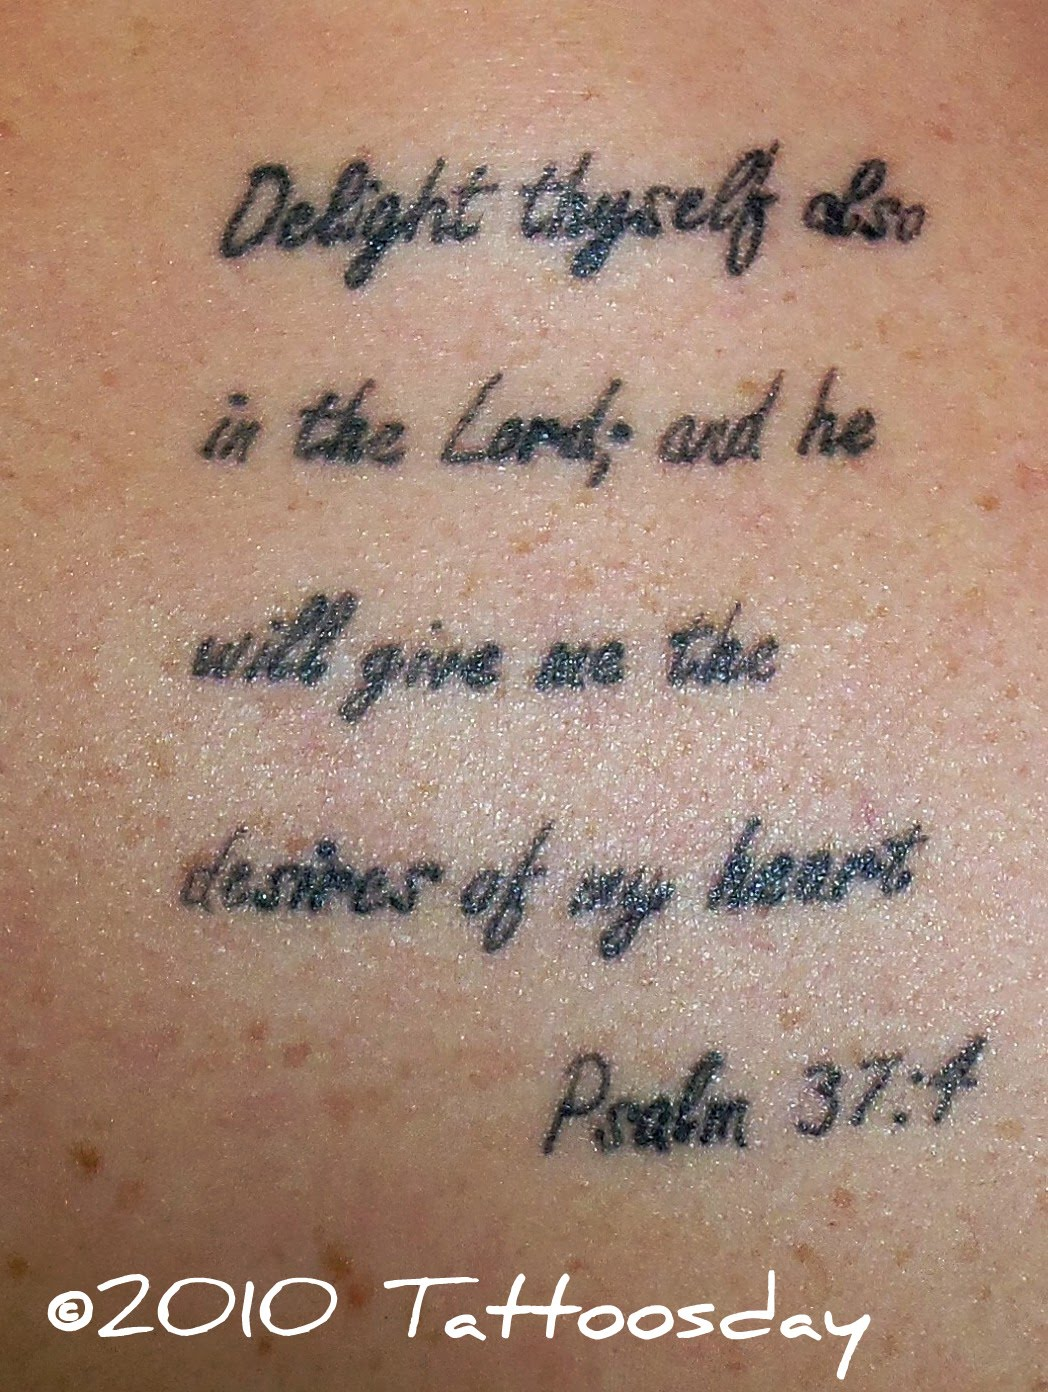 Tattoo Bible Quotes On Strength